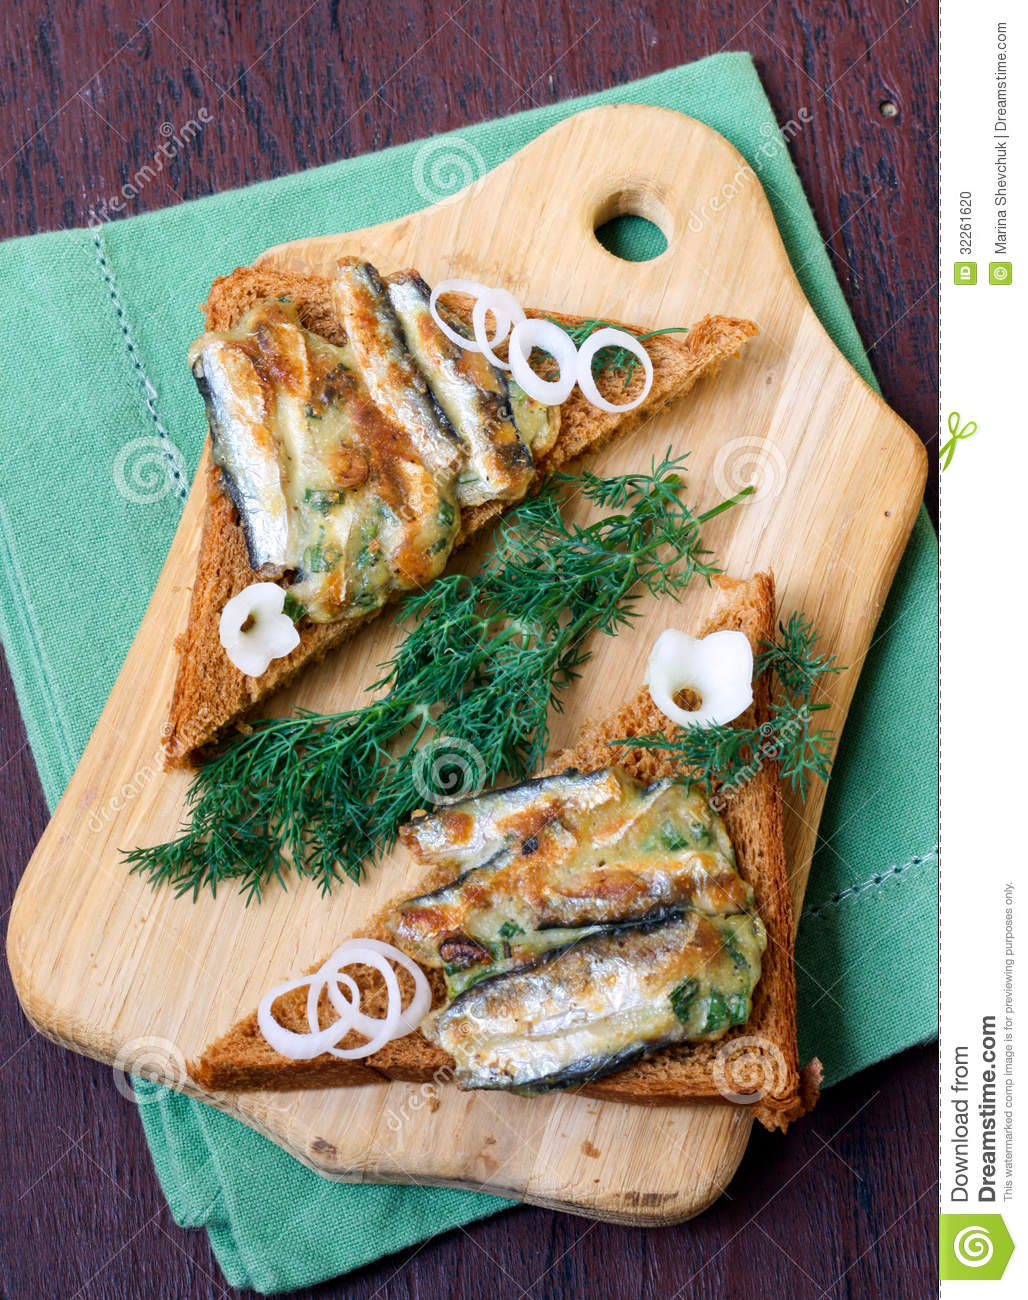 Chive and anchovy fritters